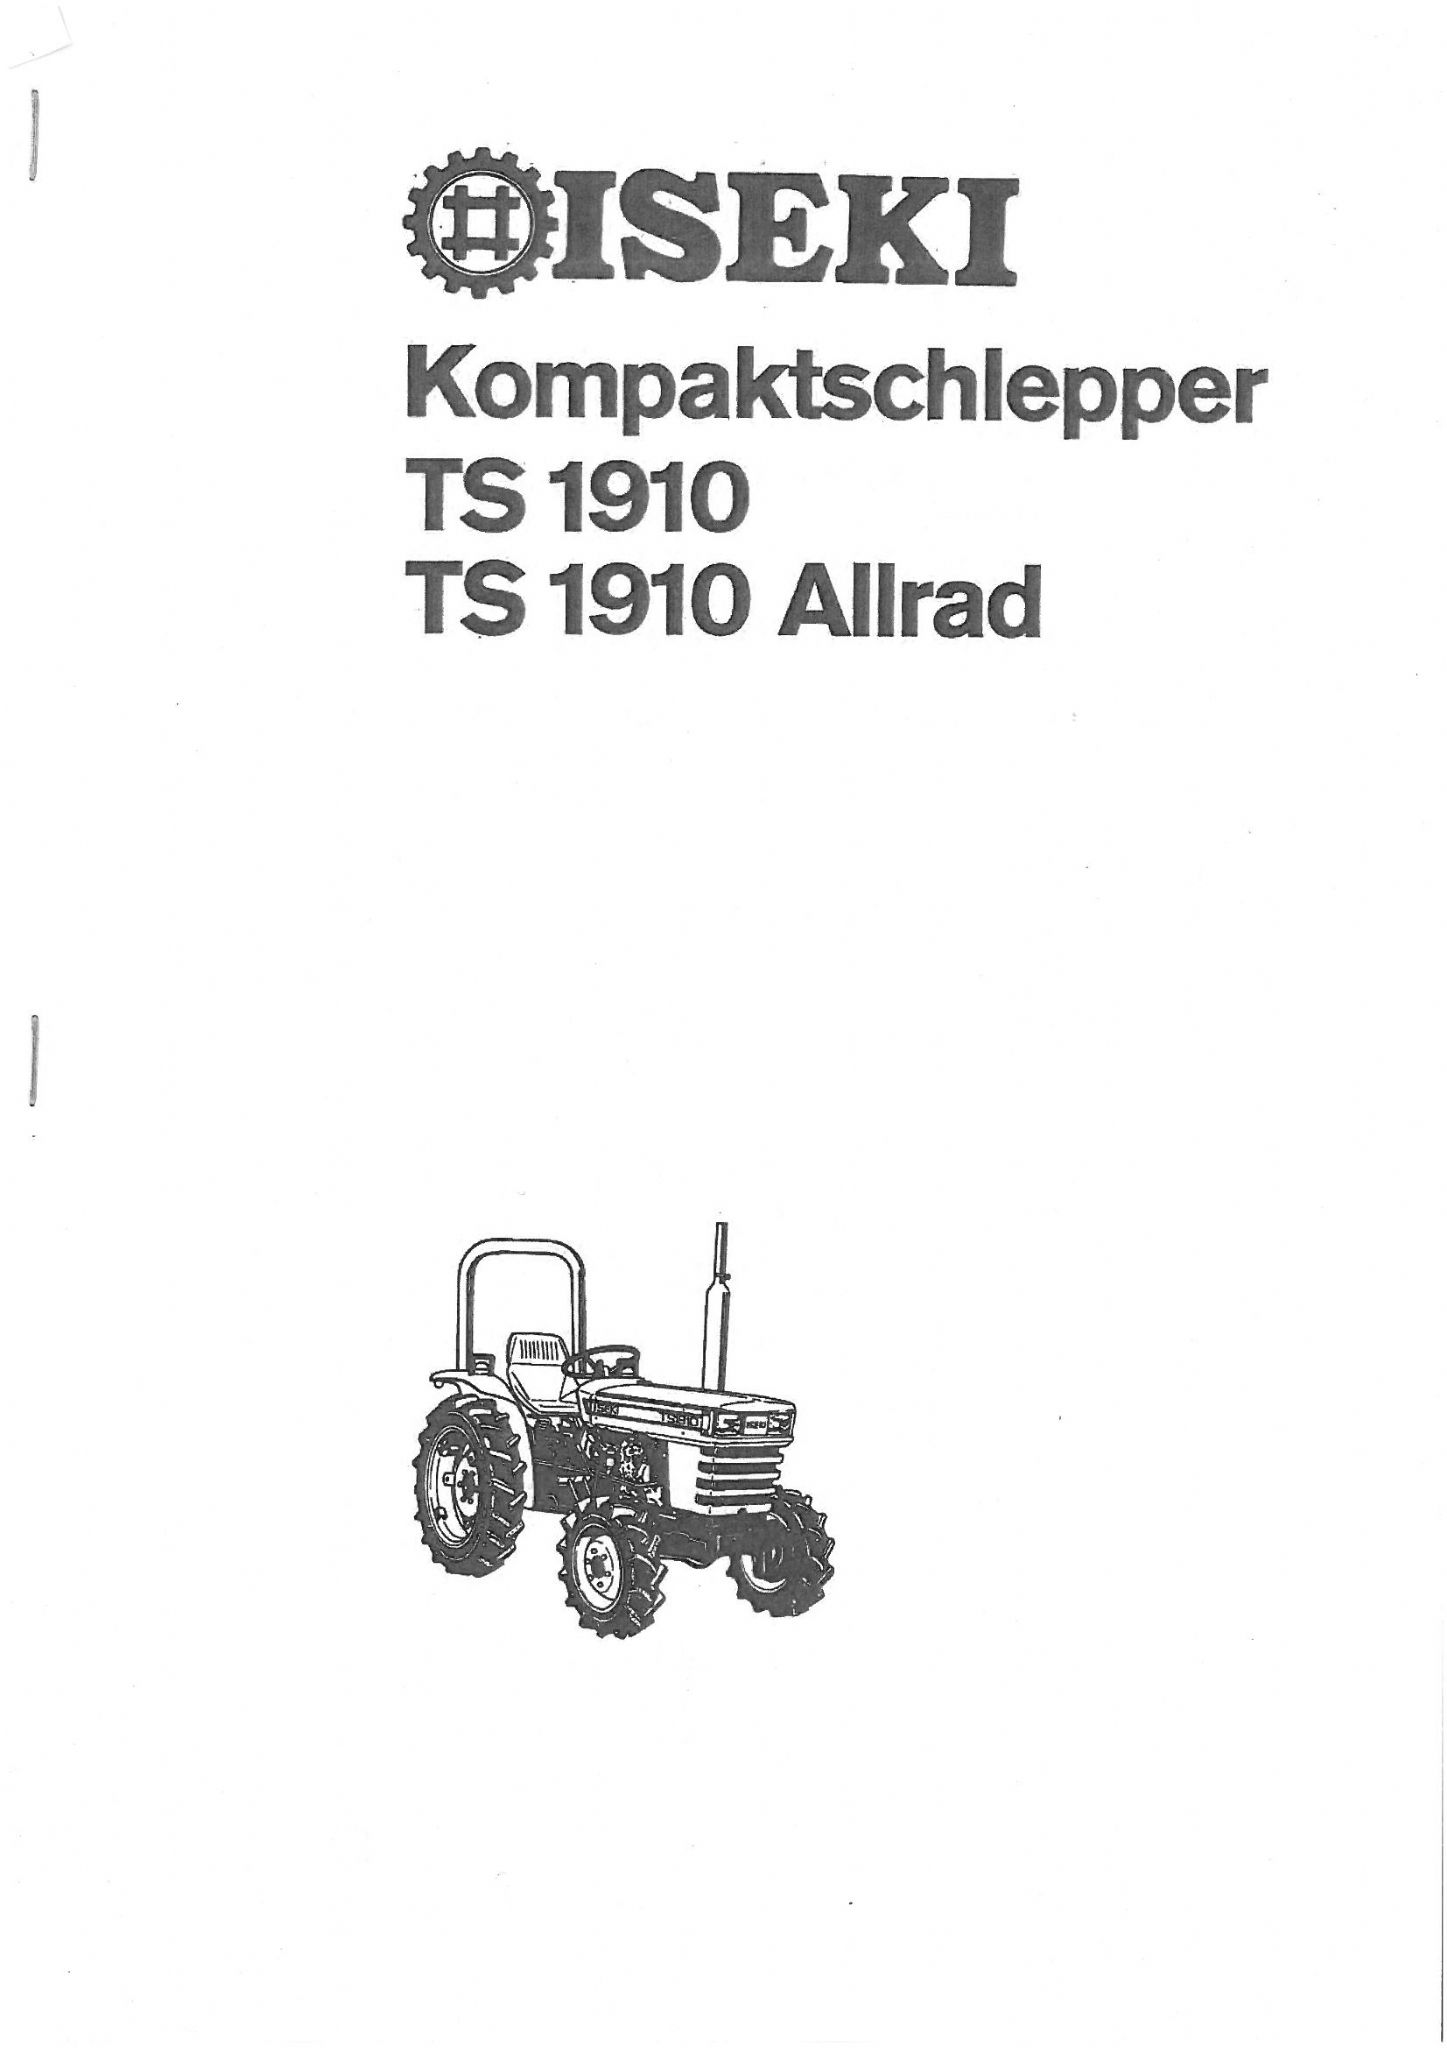 bolens g14 wiring diagram iseki tractor ts1910 parts manual - ts 1910